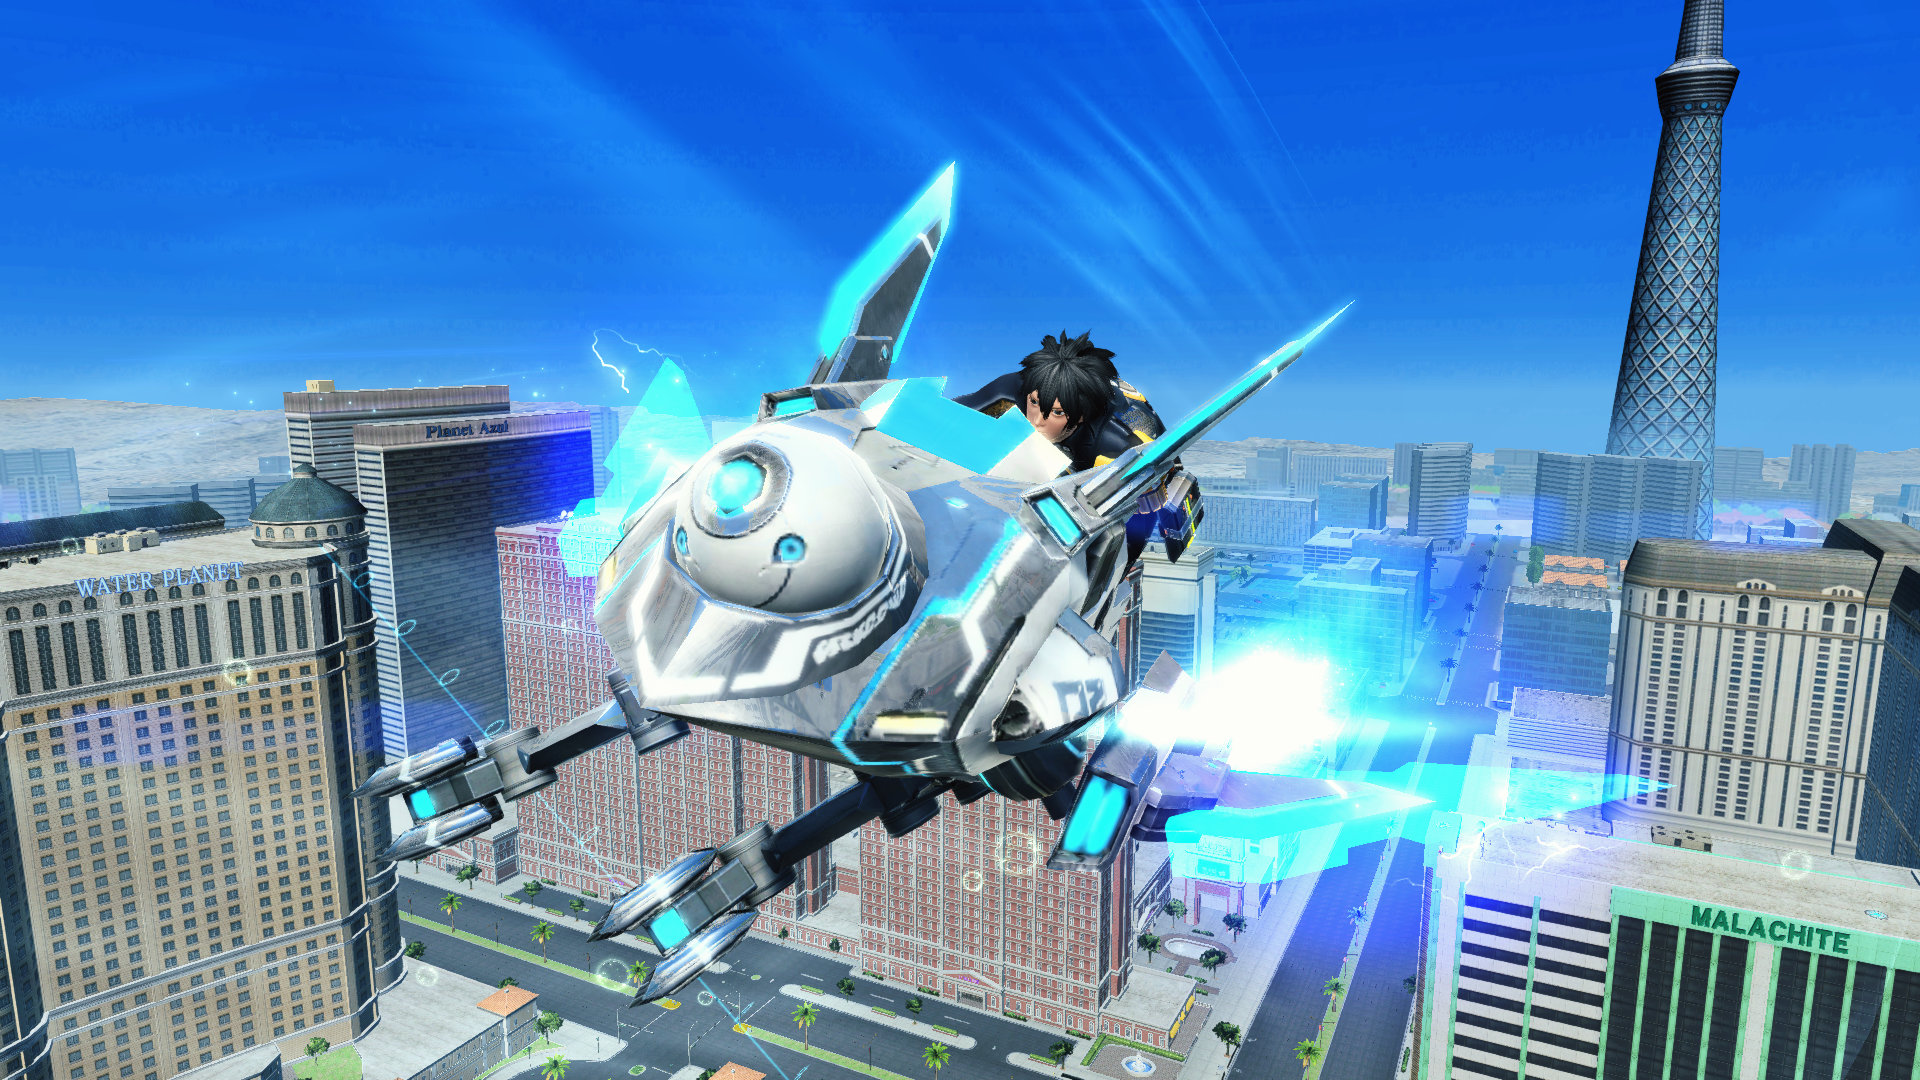 Black-haired youth flying above the city on a futuristic motor glider that resembles a jetski.